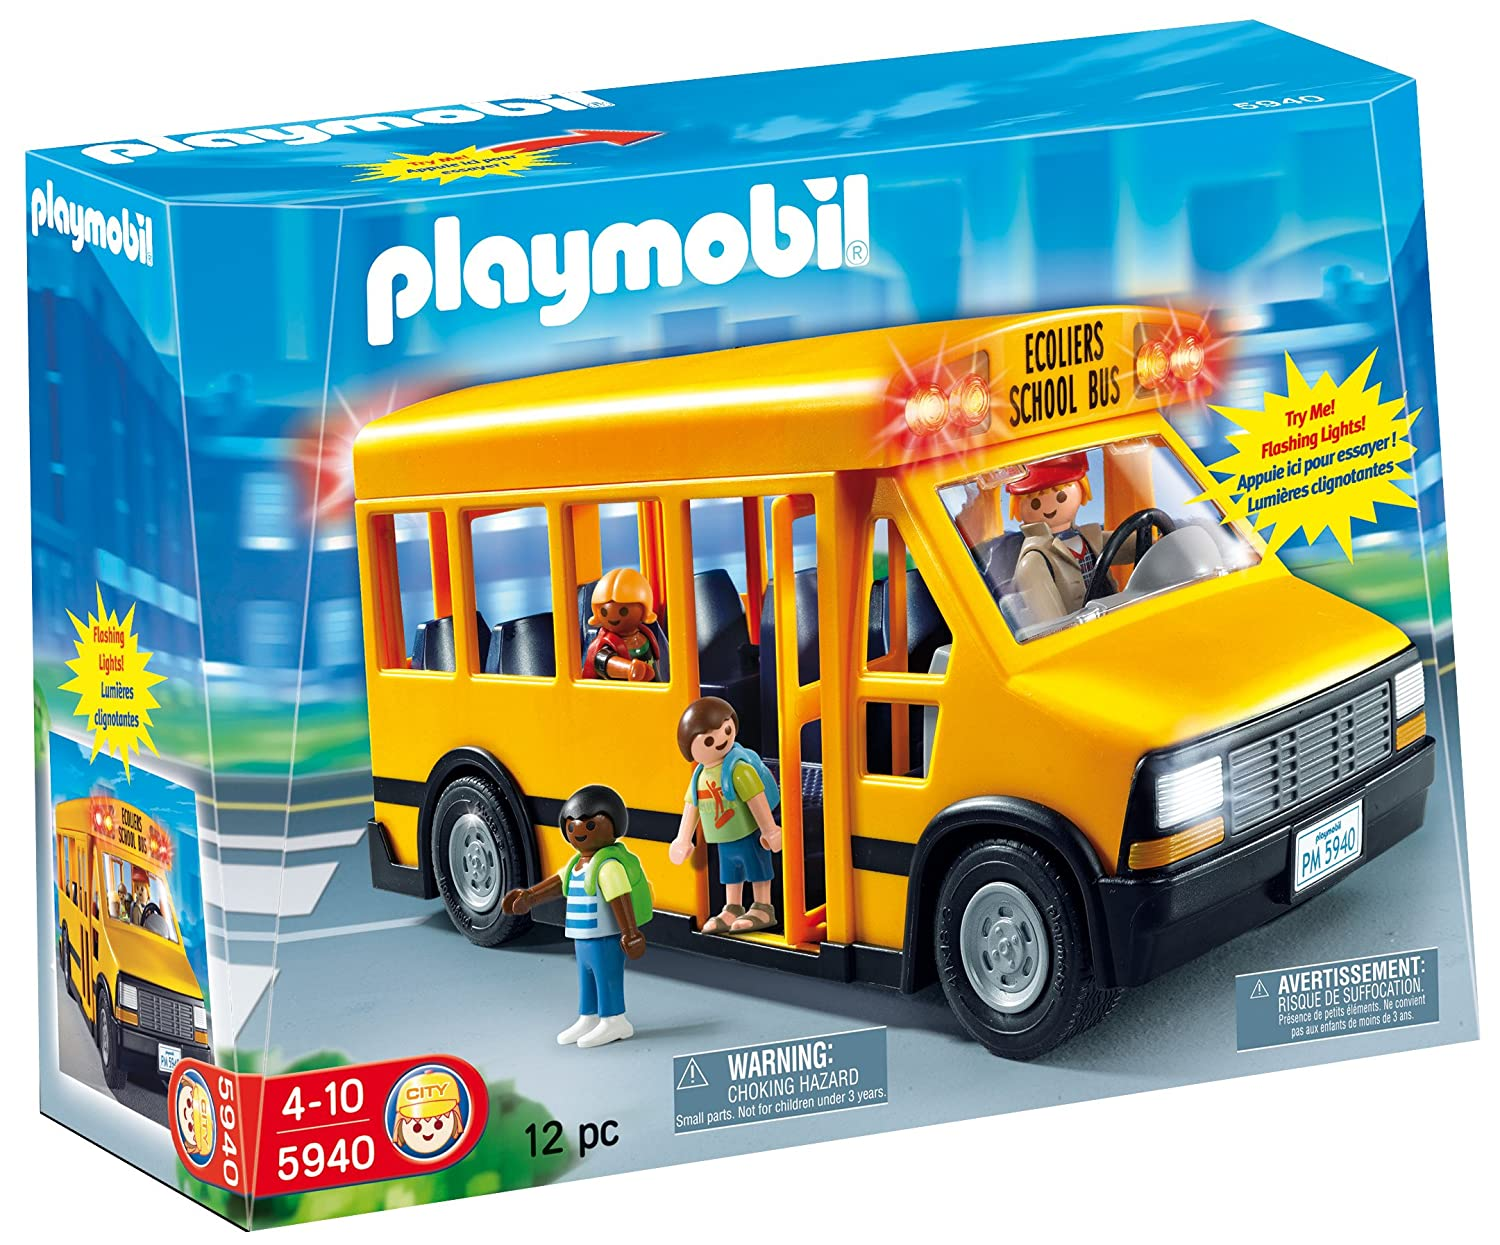 Toys For School : Kids pretend play set toy playmobil school bus car figures